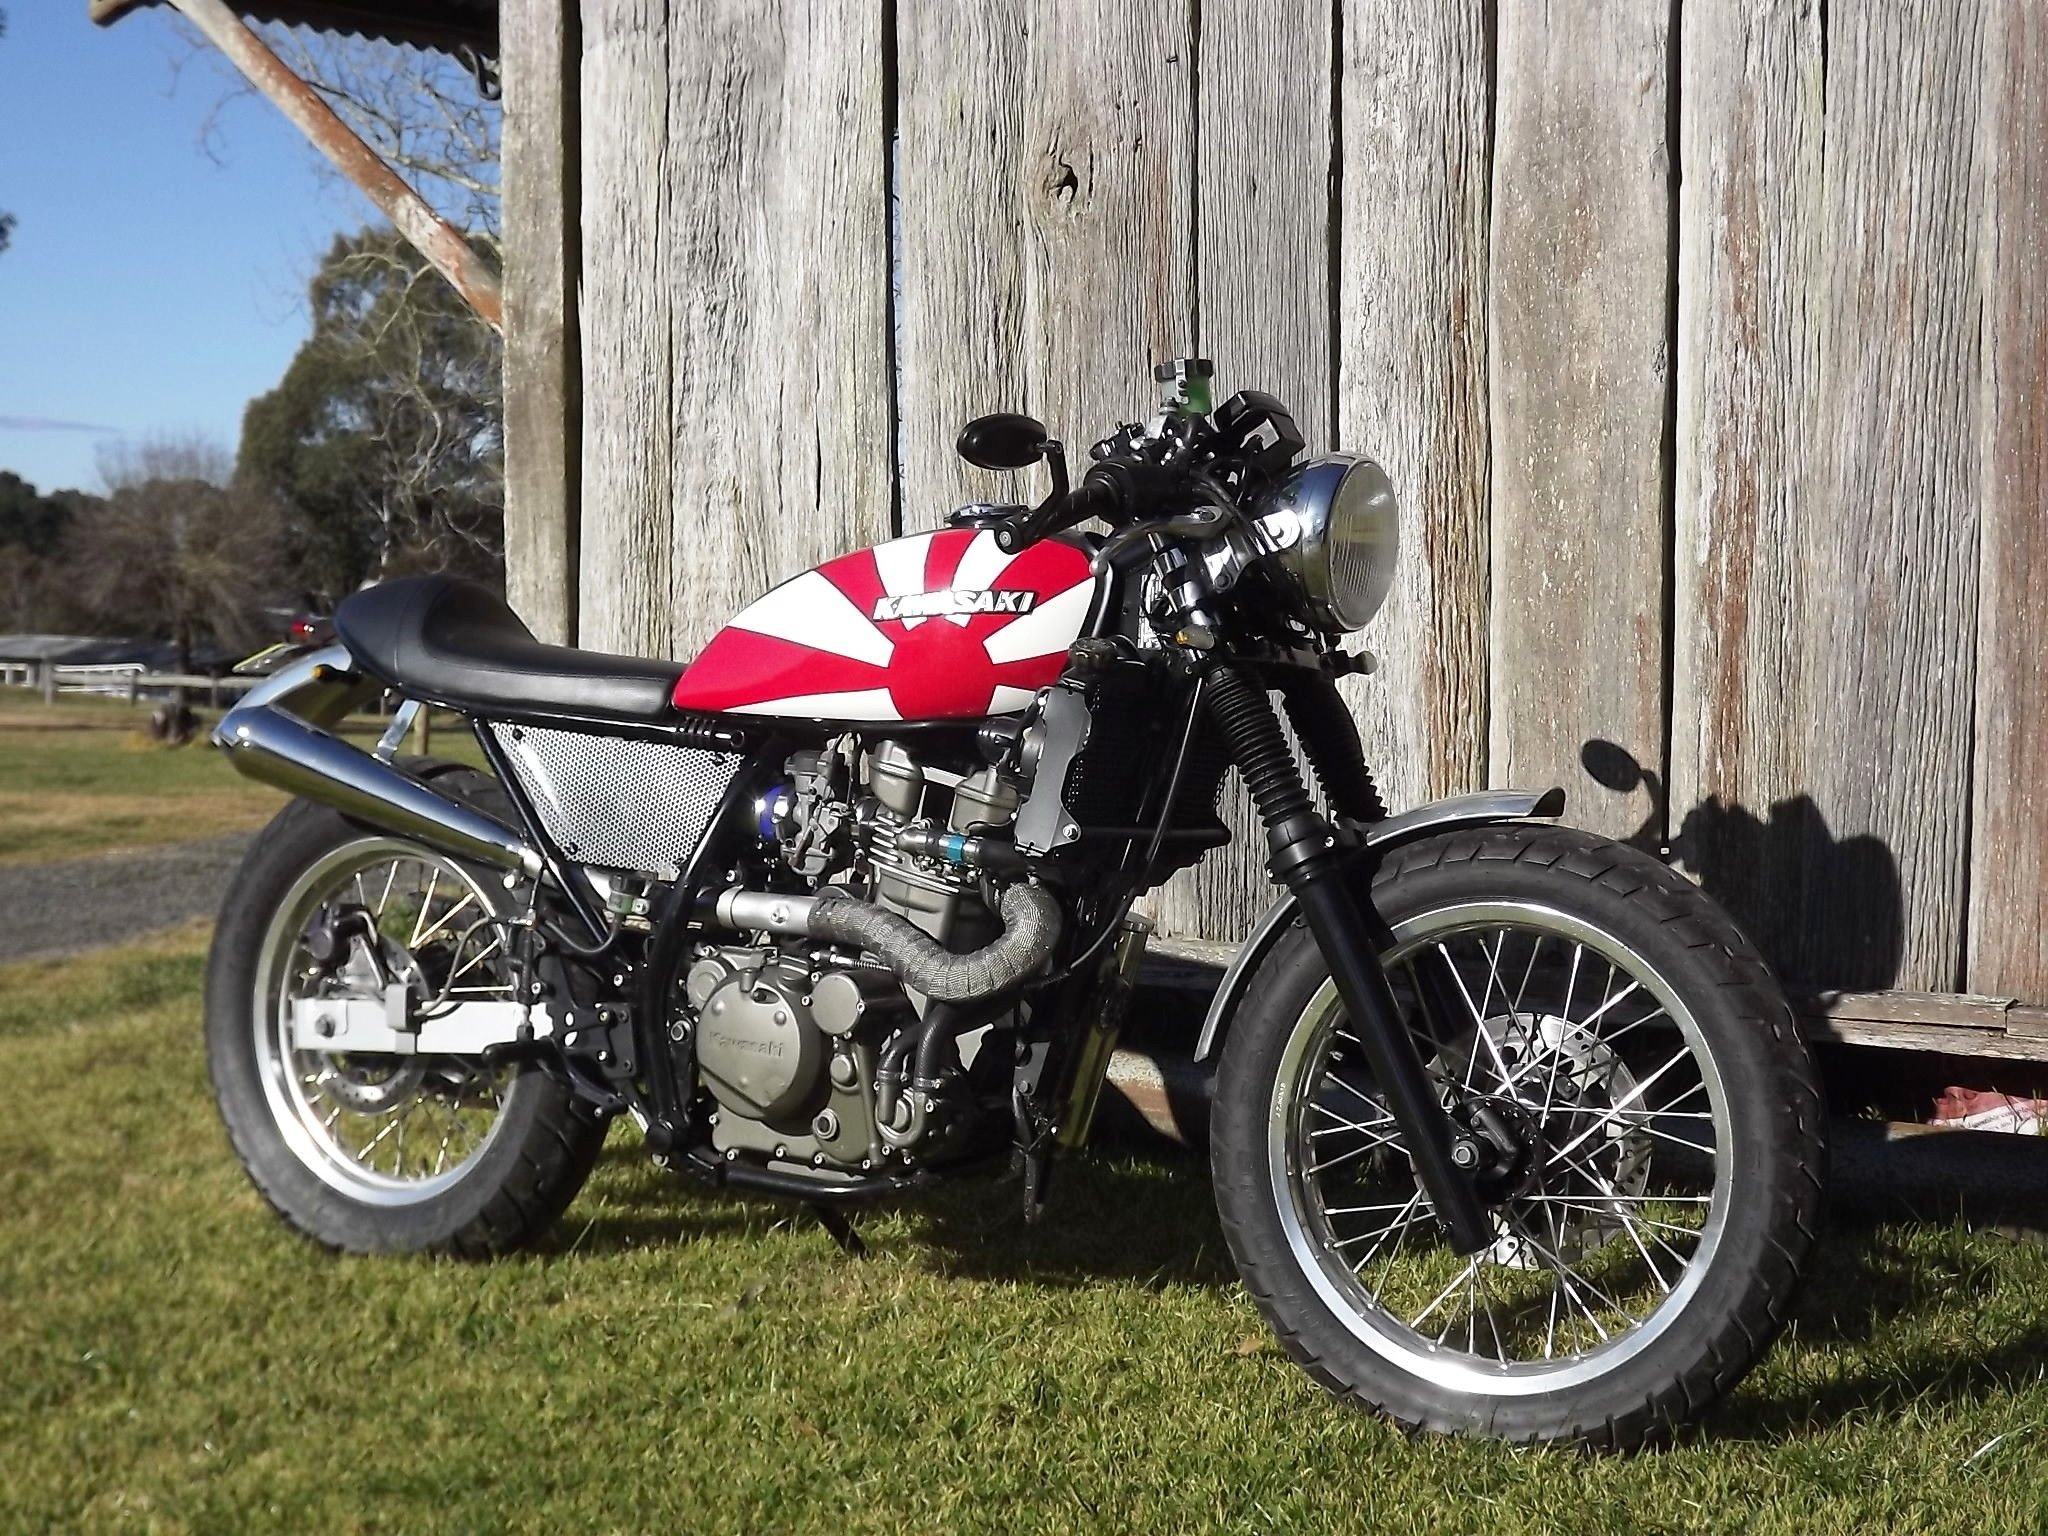 Klr 650, Scrambler Motorcycle, Street Tracker, Cafe Racers, Motorbikes,  Cars And